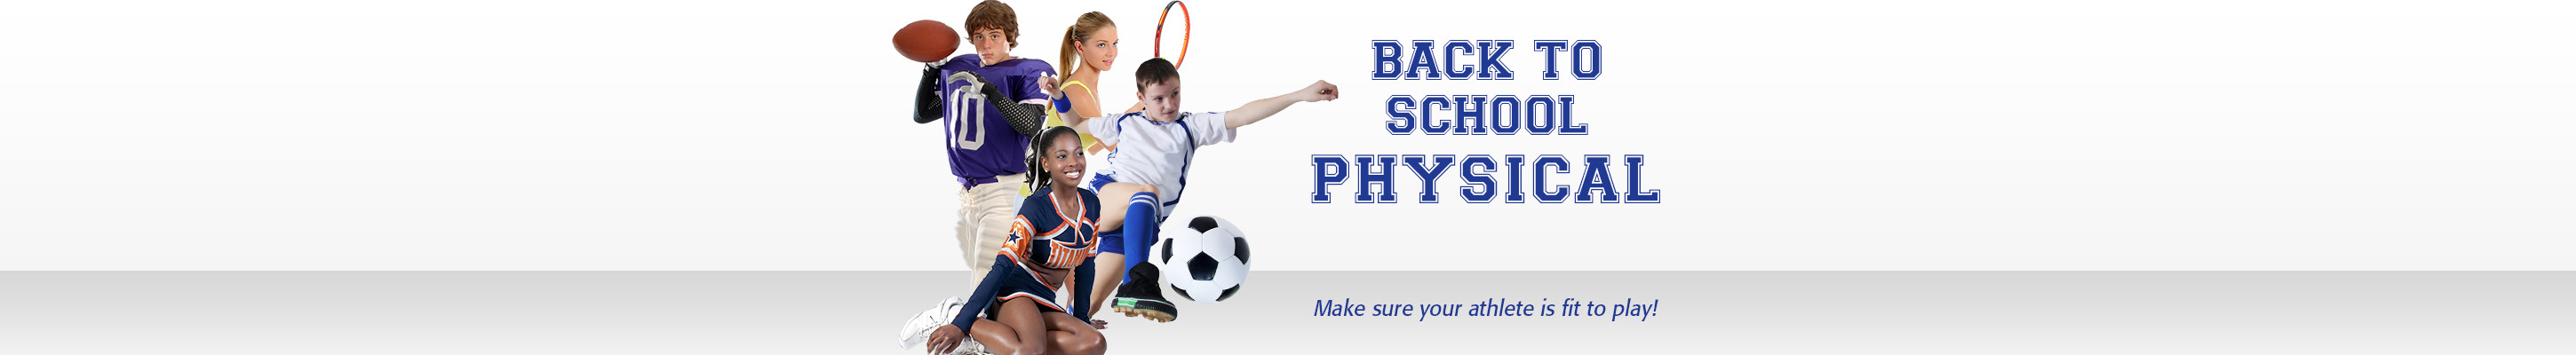 Back To School Physicals for Student Athletes